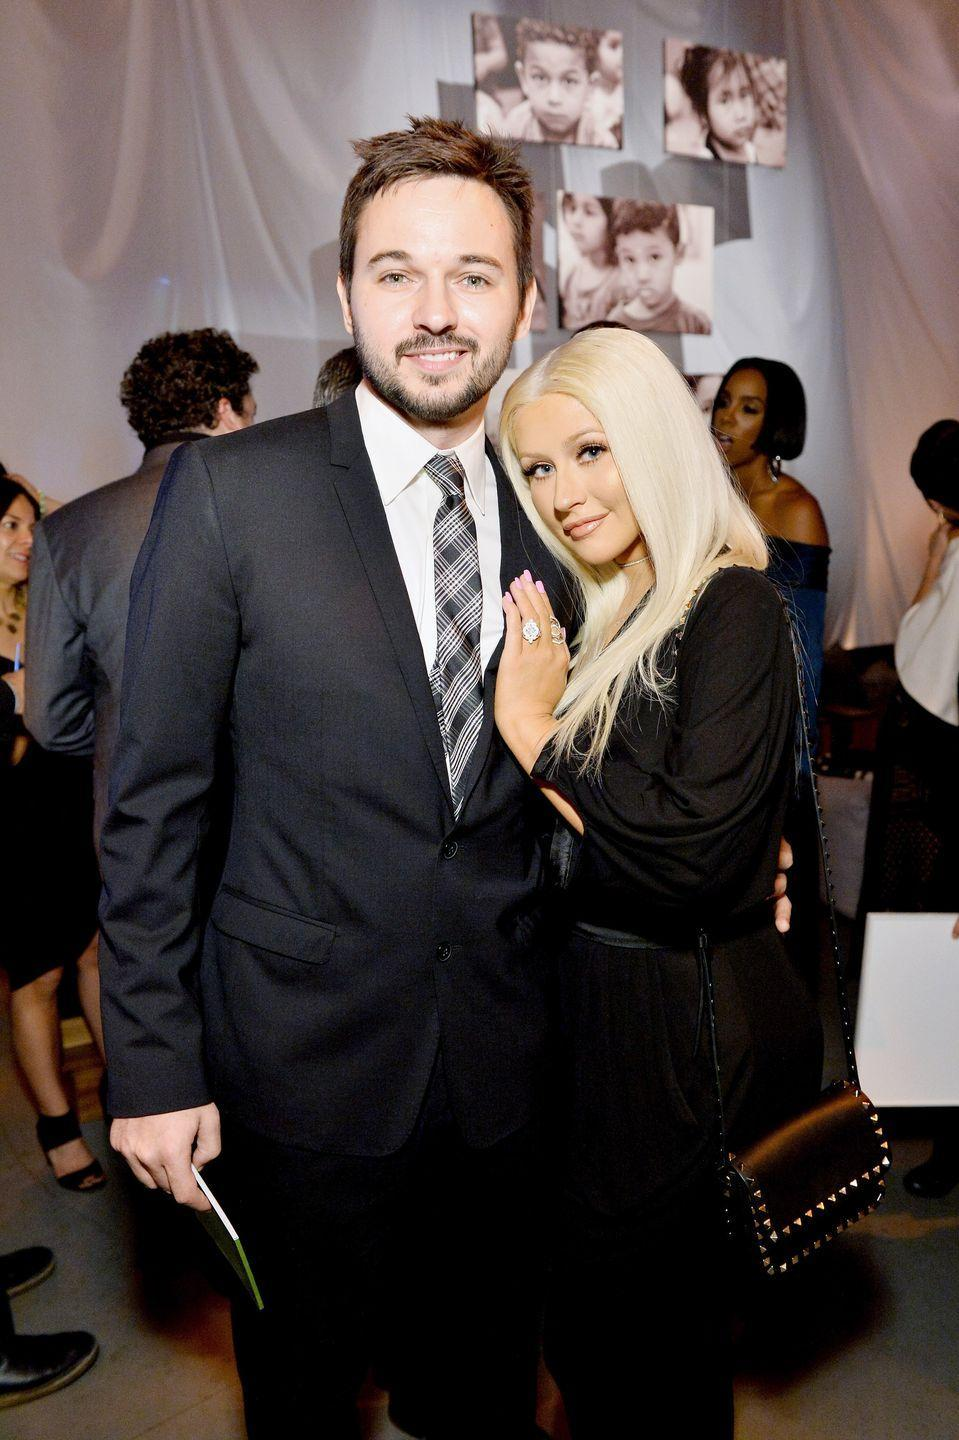 "<p>This pop singer opened up to <em><a href=""https://people.com/parents/christina-aguilera-summer-rain-name-choice/"" rel=""nofollow noopener"" target=""_blank"" data-ylk=""slk:People"" class=""link rapid-noclick-resp"">People</a> </em>about the meaning behind the eclectic moniker she and husband Matthew Rutler selected for their first child together. ""Summer is a time of spreading warmth and light, while rain washes away…replenishes and brings new life to allow growth and new beginnings,"" Christina Aguilera says. ""Her beauty and sunshine exude from within.""</p><p>Summer Rain joins Max Liron, Christina's child from her first number to Jordan Bratman.</p>"